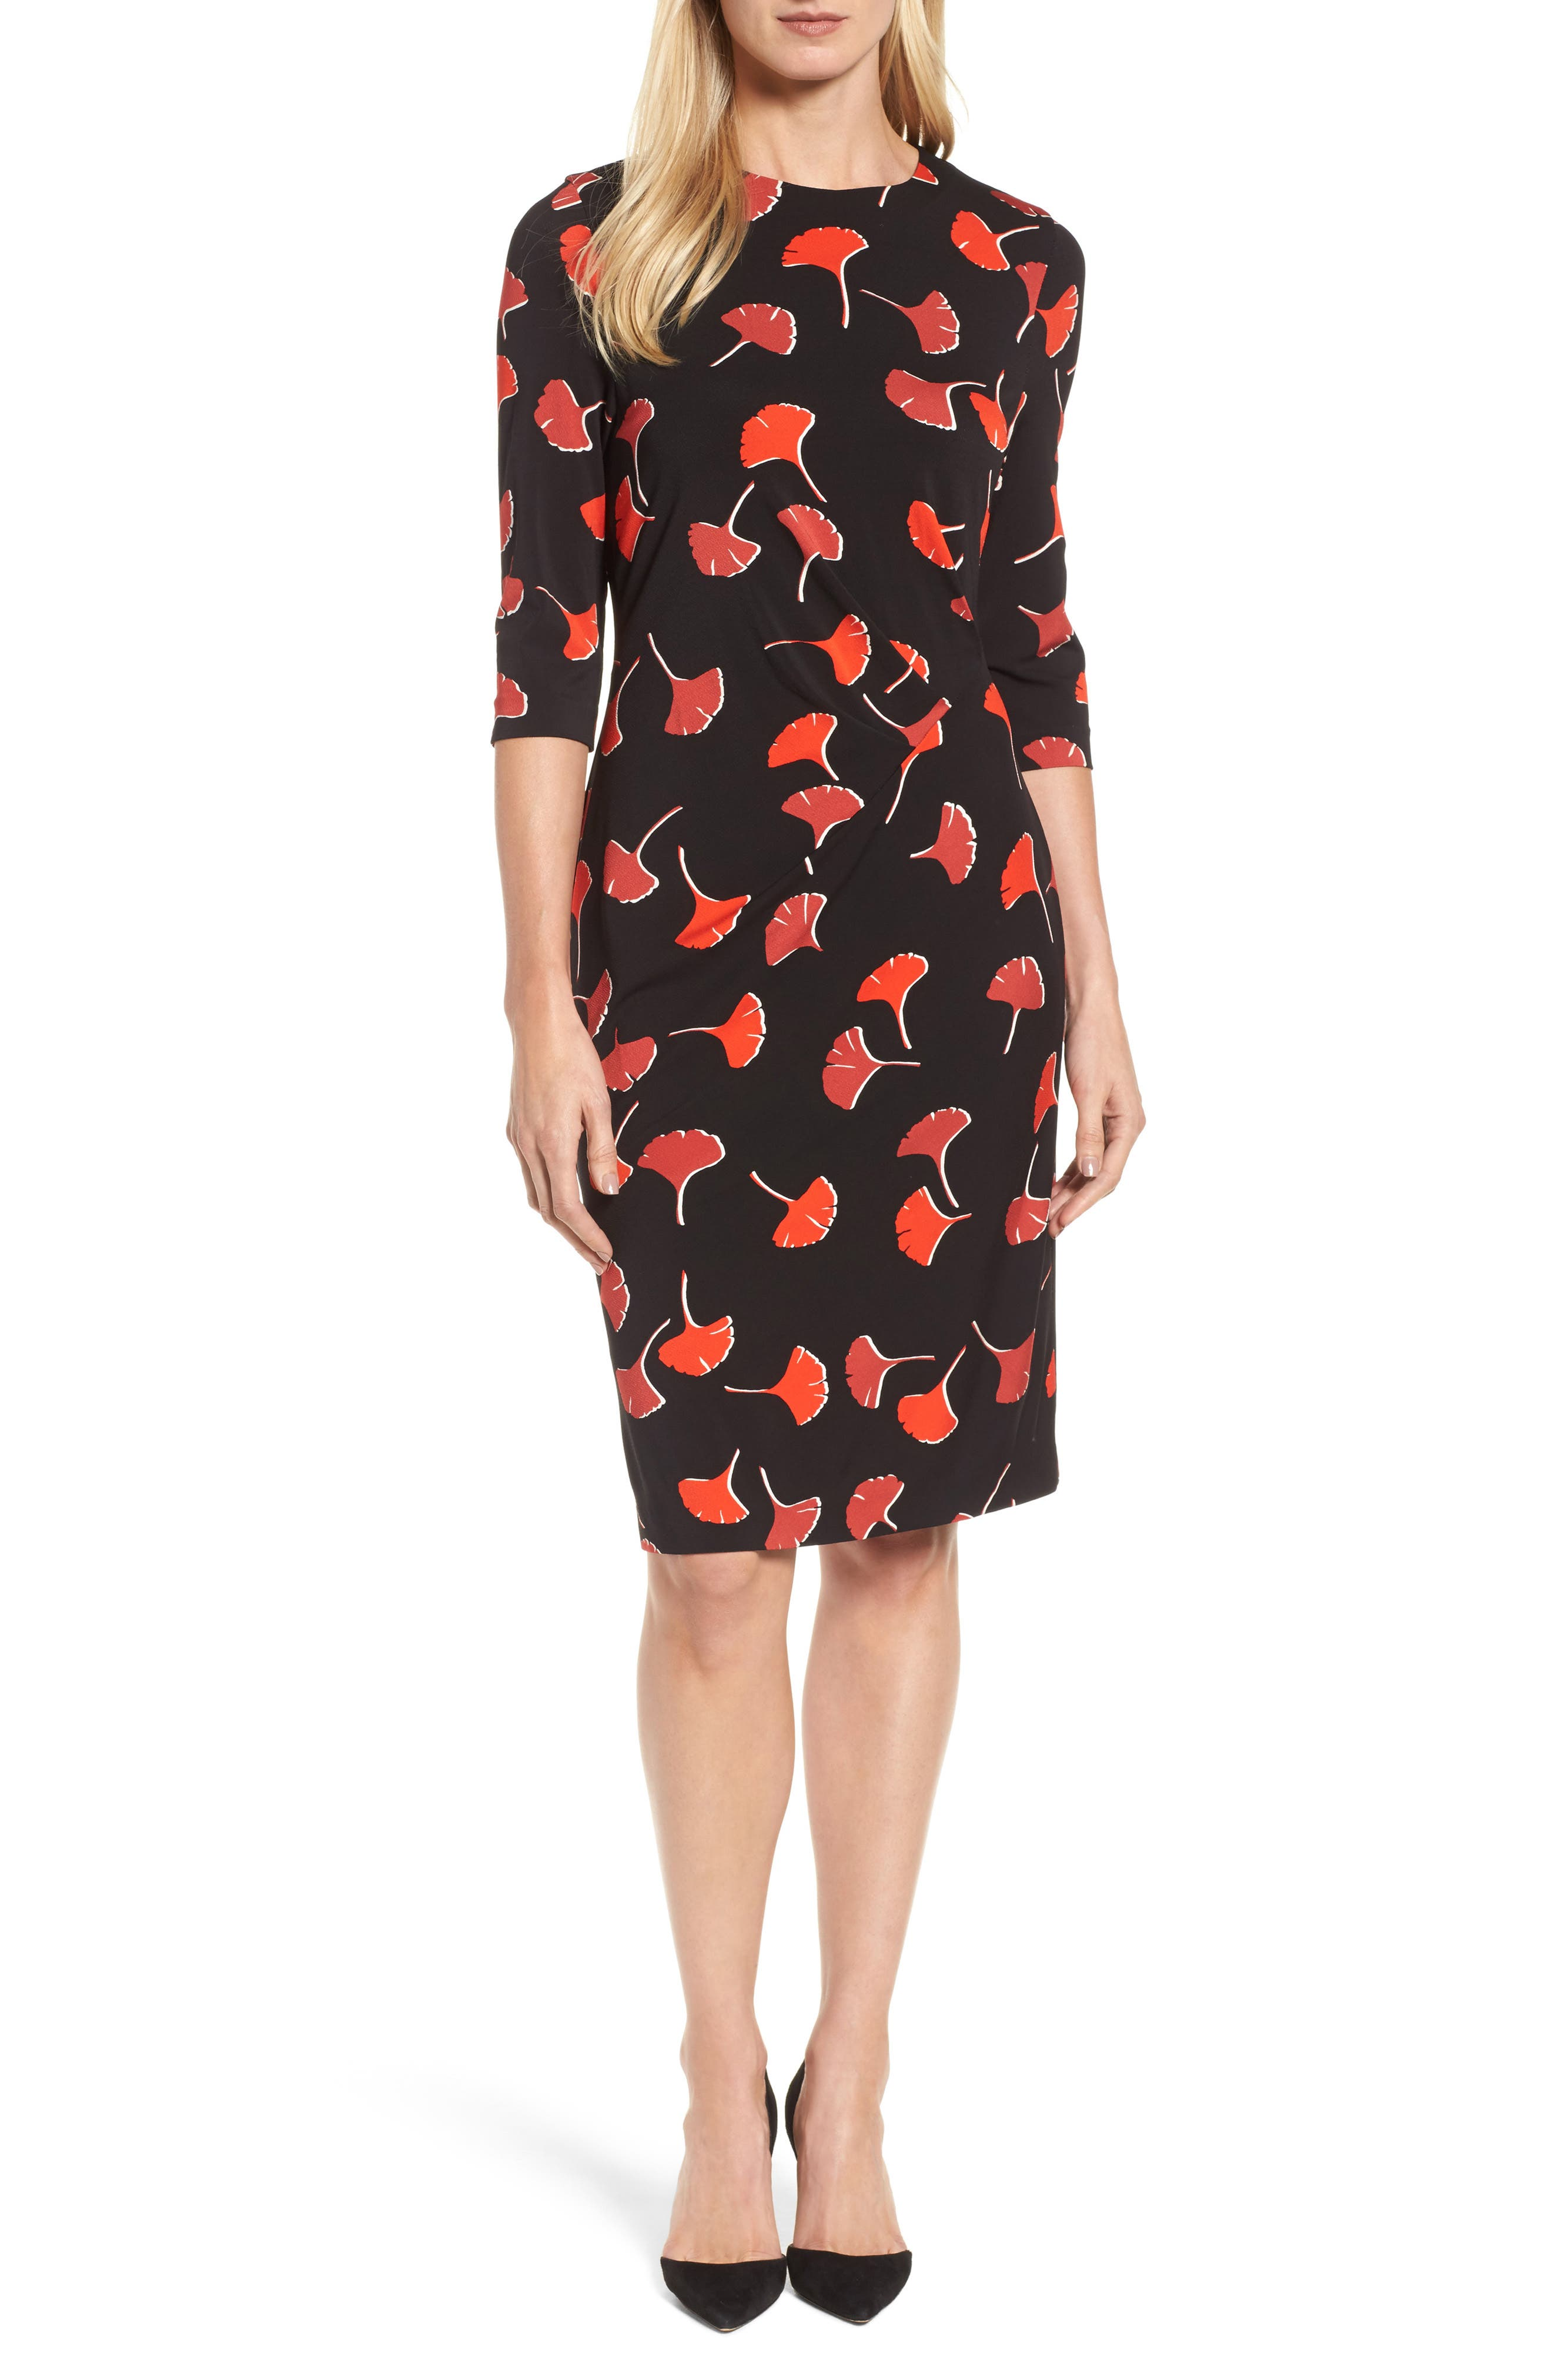 Alternate Image 1 Selected - BOSS Eseona Print Sheath Dress